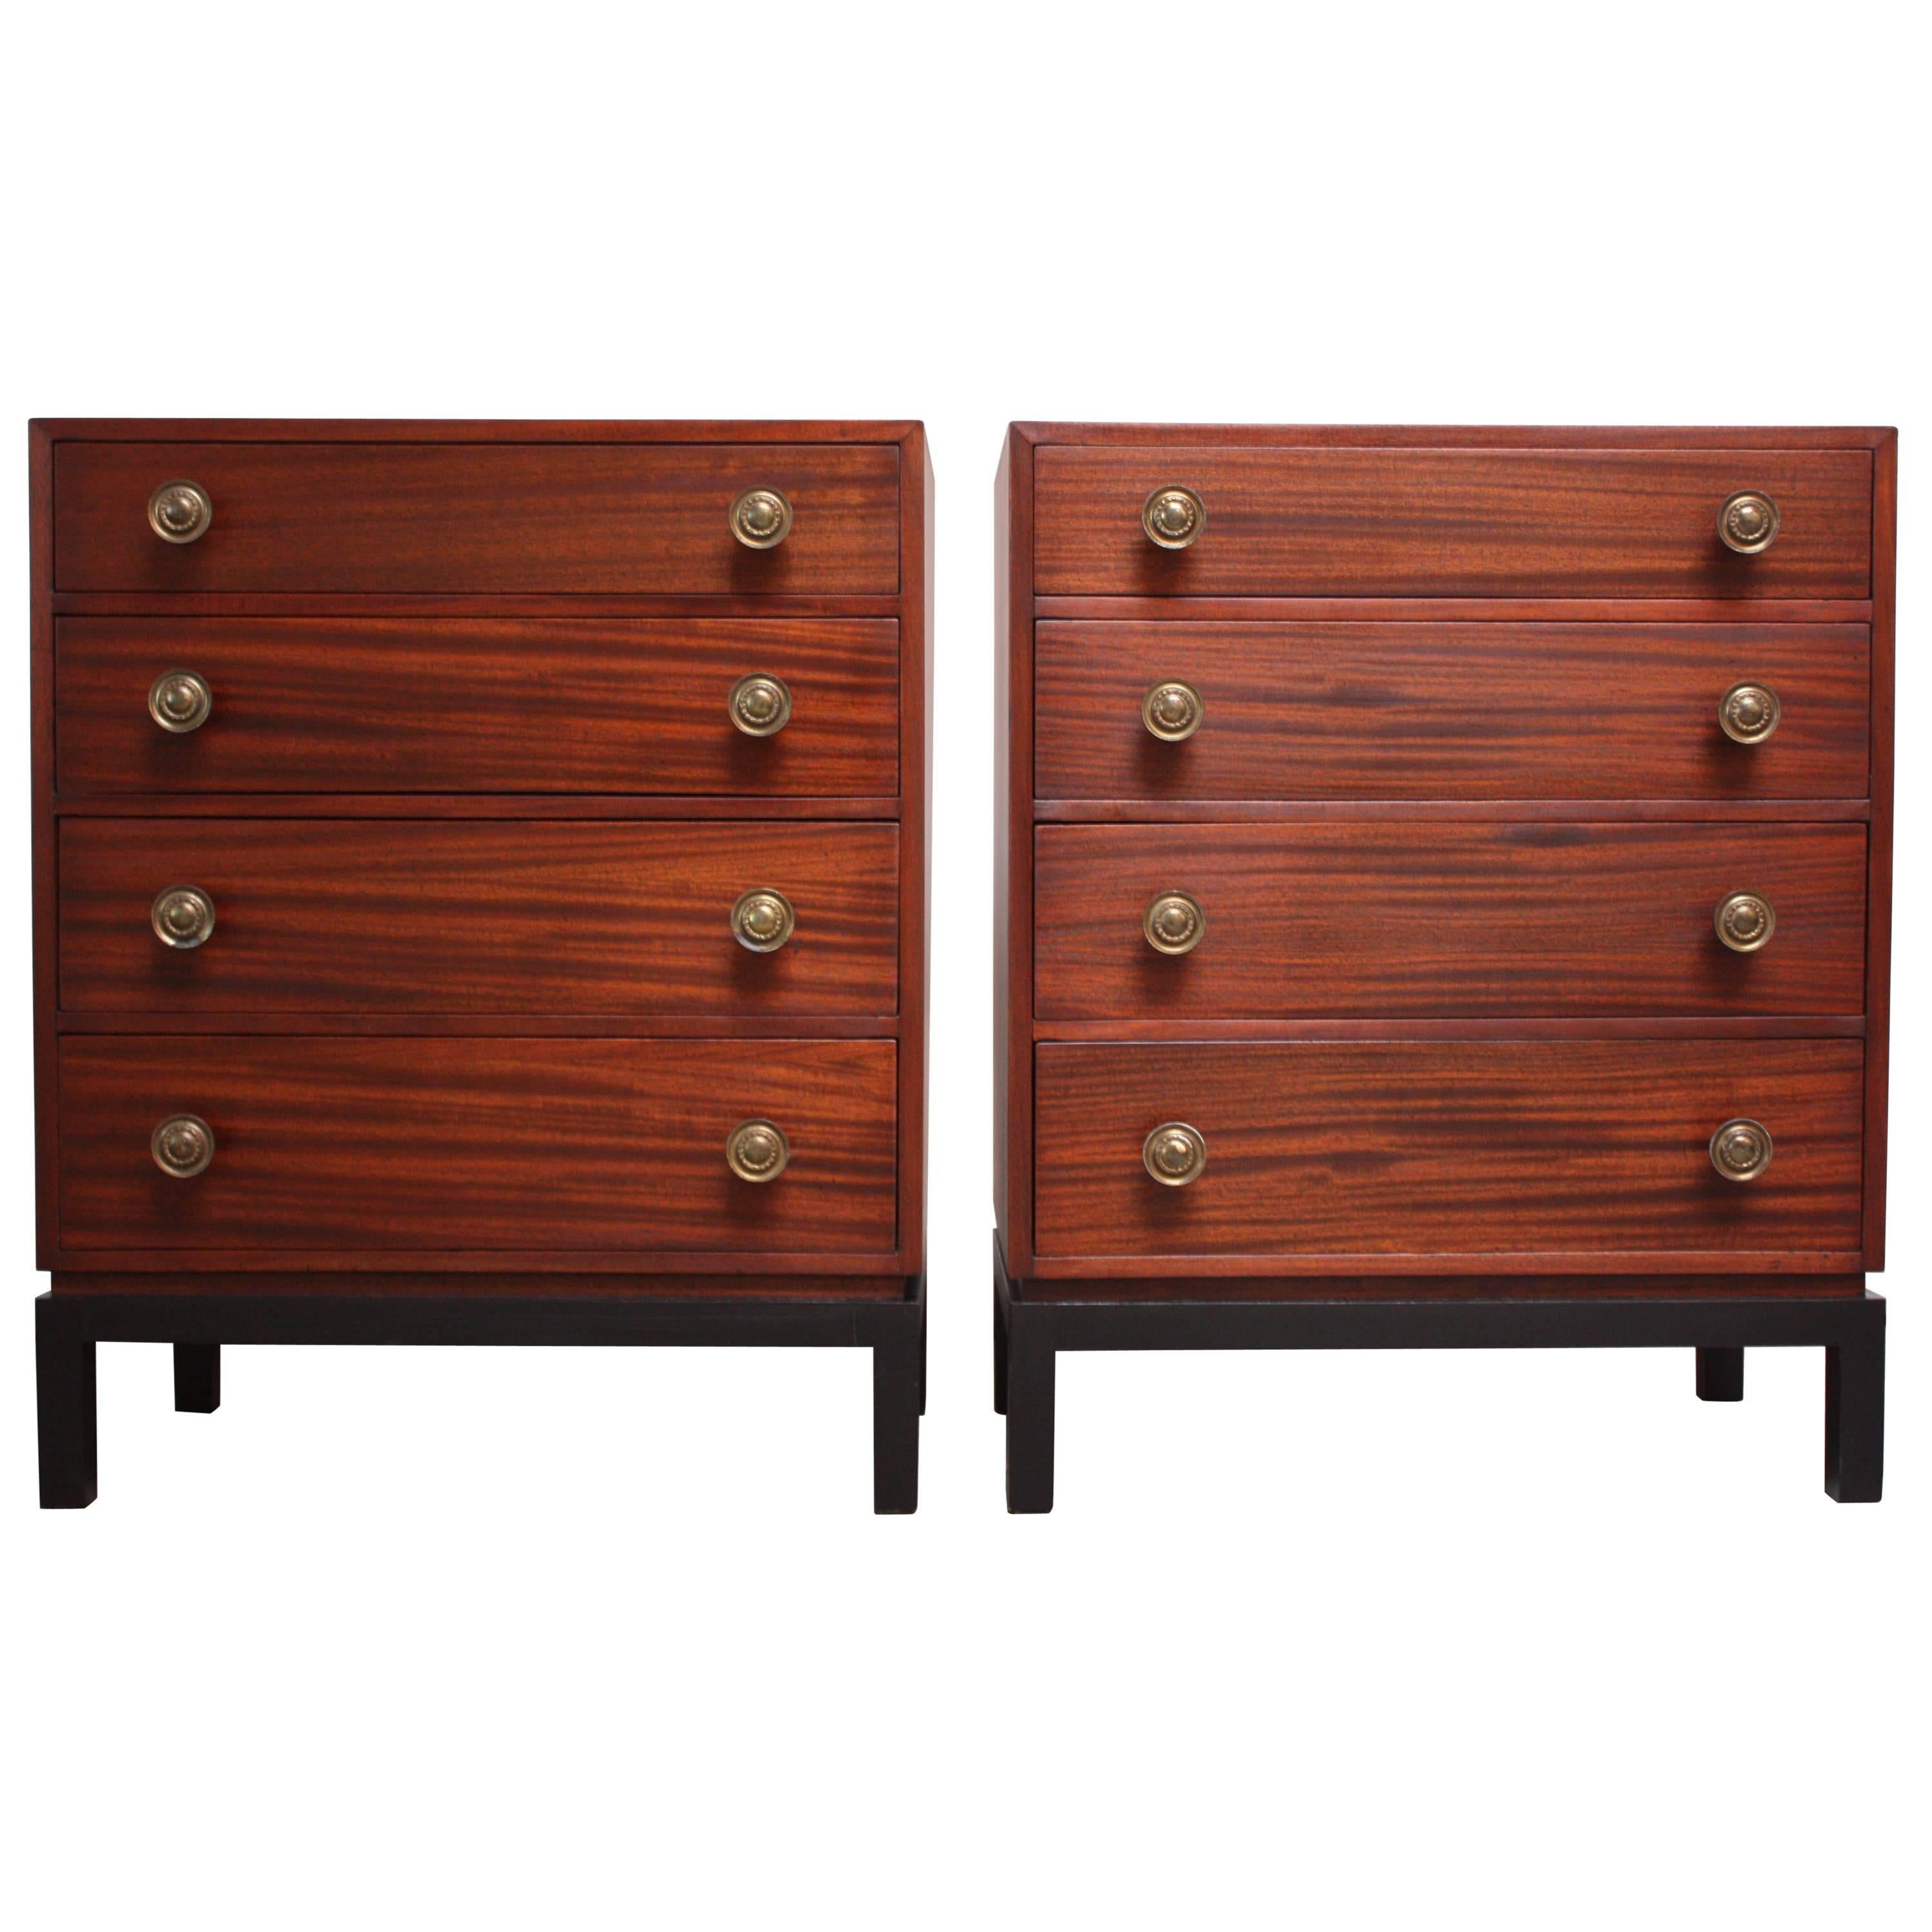 Pair of Midcentury Stained Mahogany Chest of Drawers